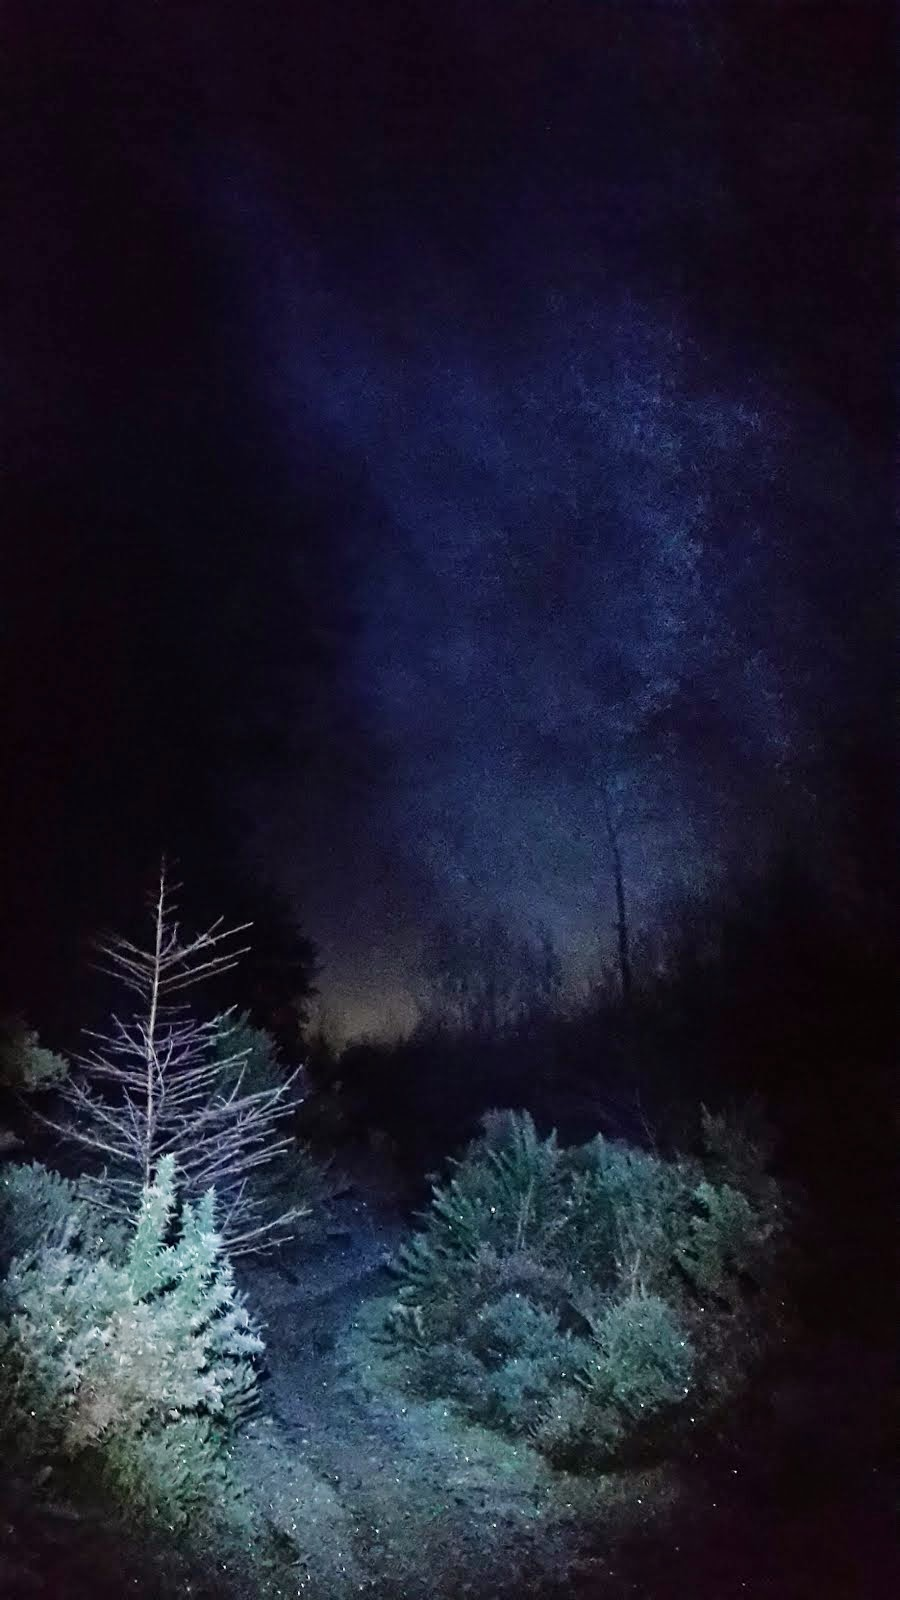 Night running in the forest